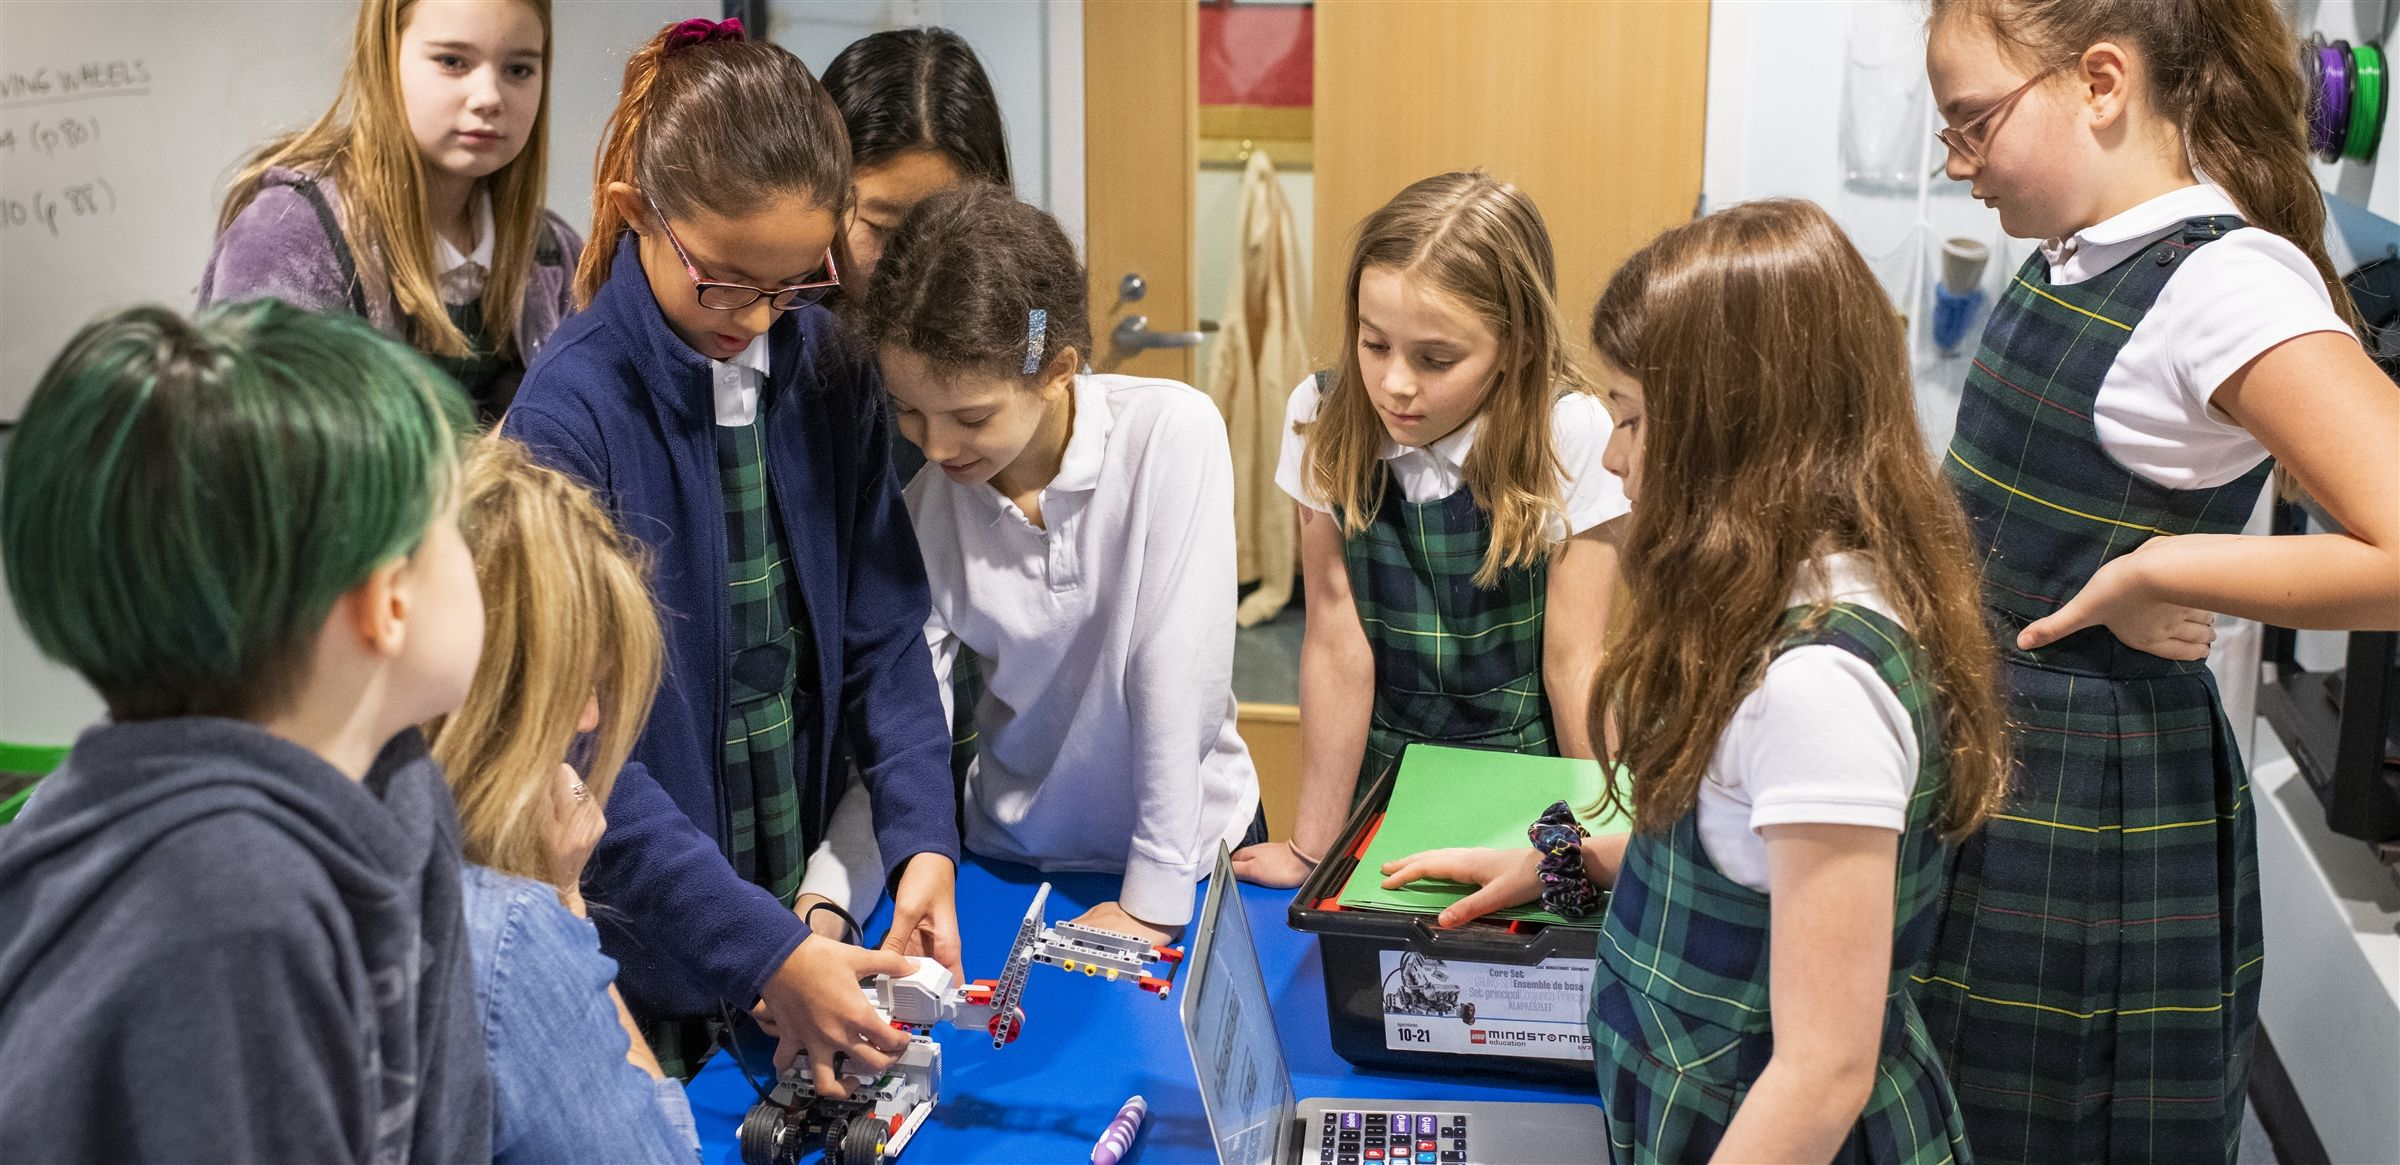 The Lower School STEAM curriculum includes building WeDo robots with motors, sensors and gears, learning to code and creating their own animations.